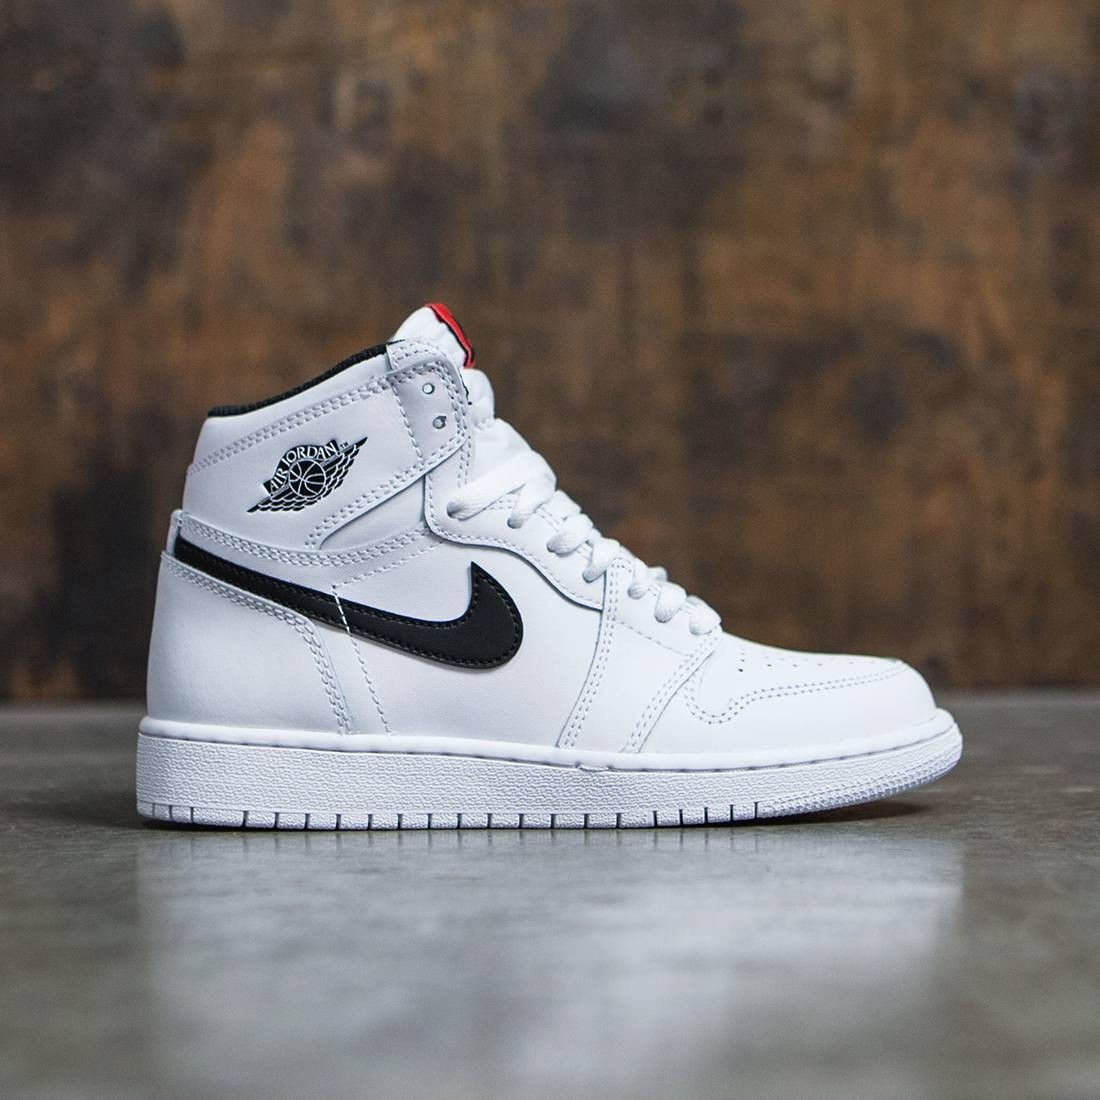 3433c21faa99 Jordan Big Kids Air Jordan 1 Retro High OG (GS) (white   black-white-university  red)